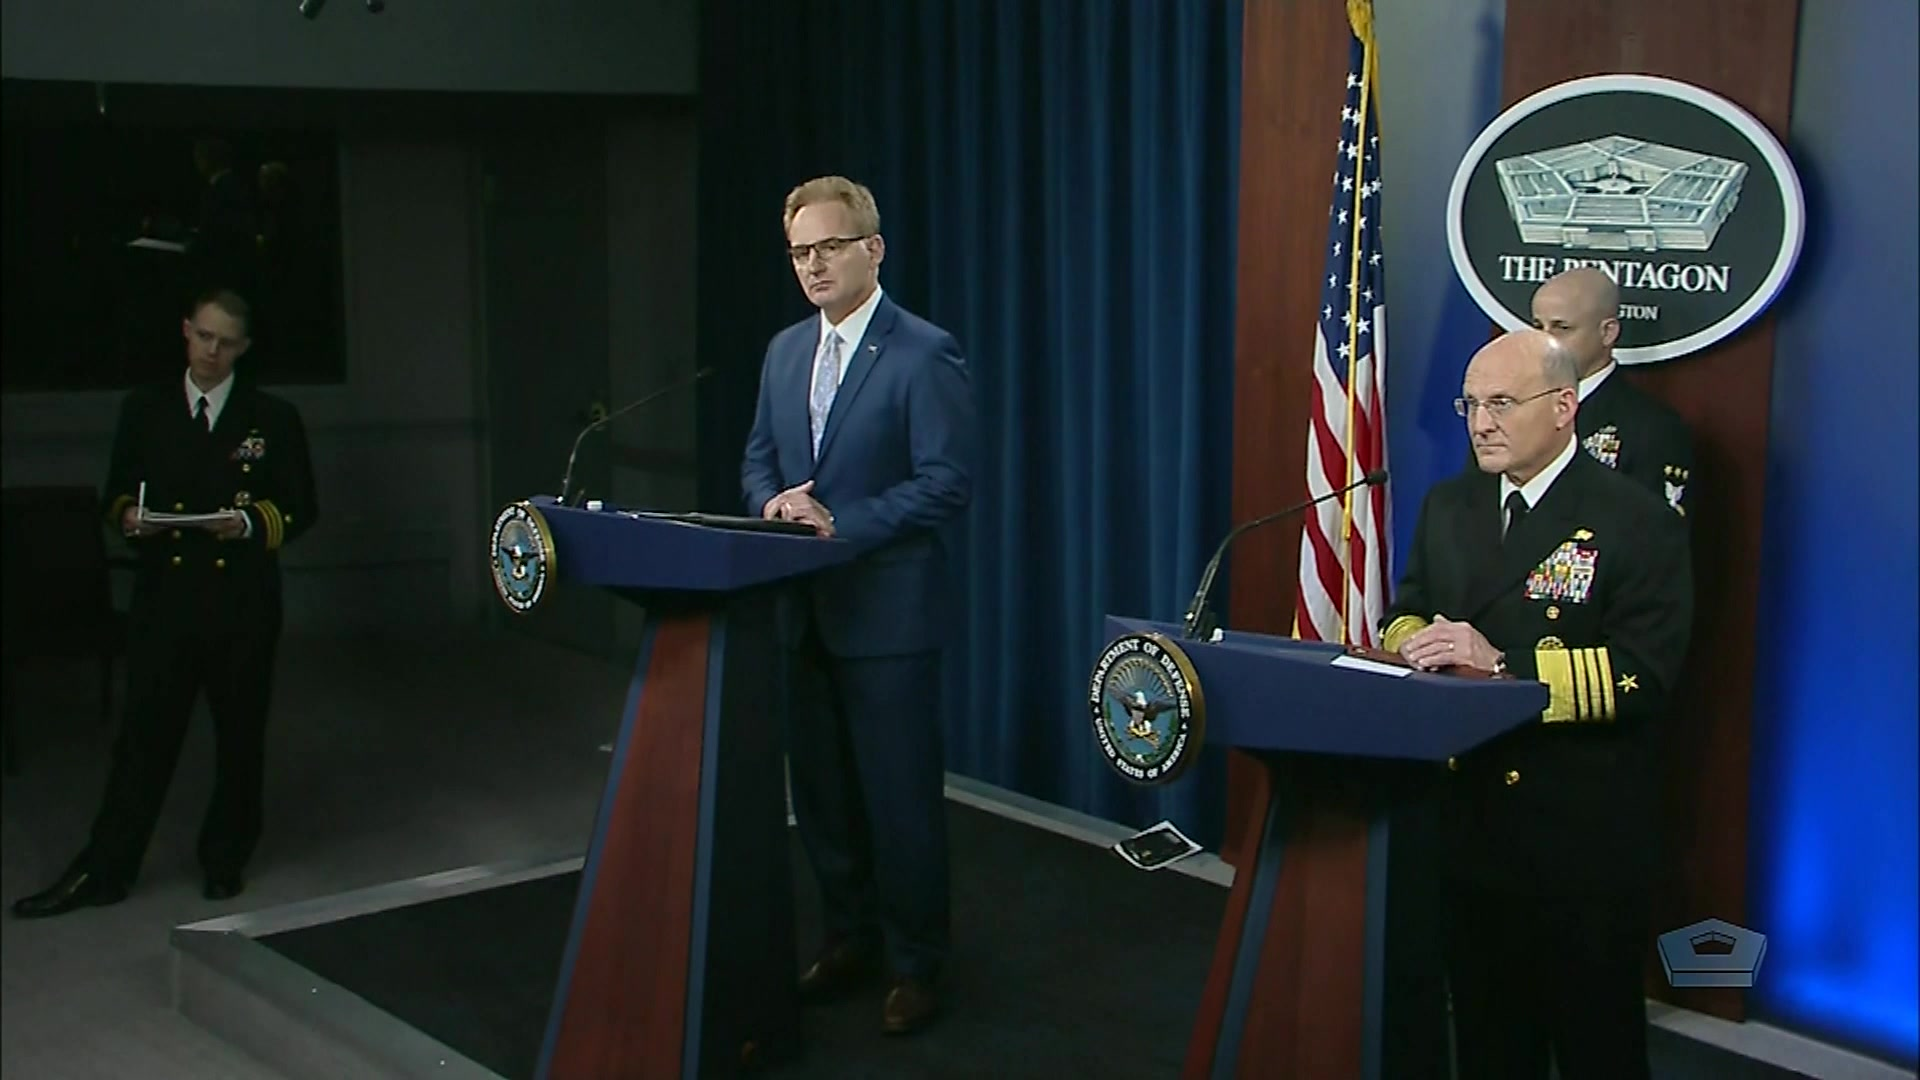 A civilian and a Navy admiral stand at twin lecterns.